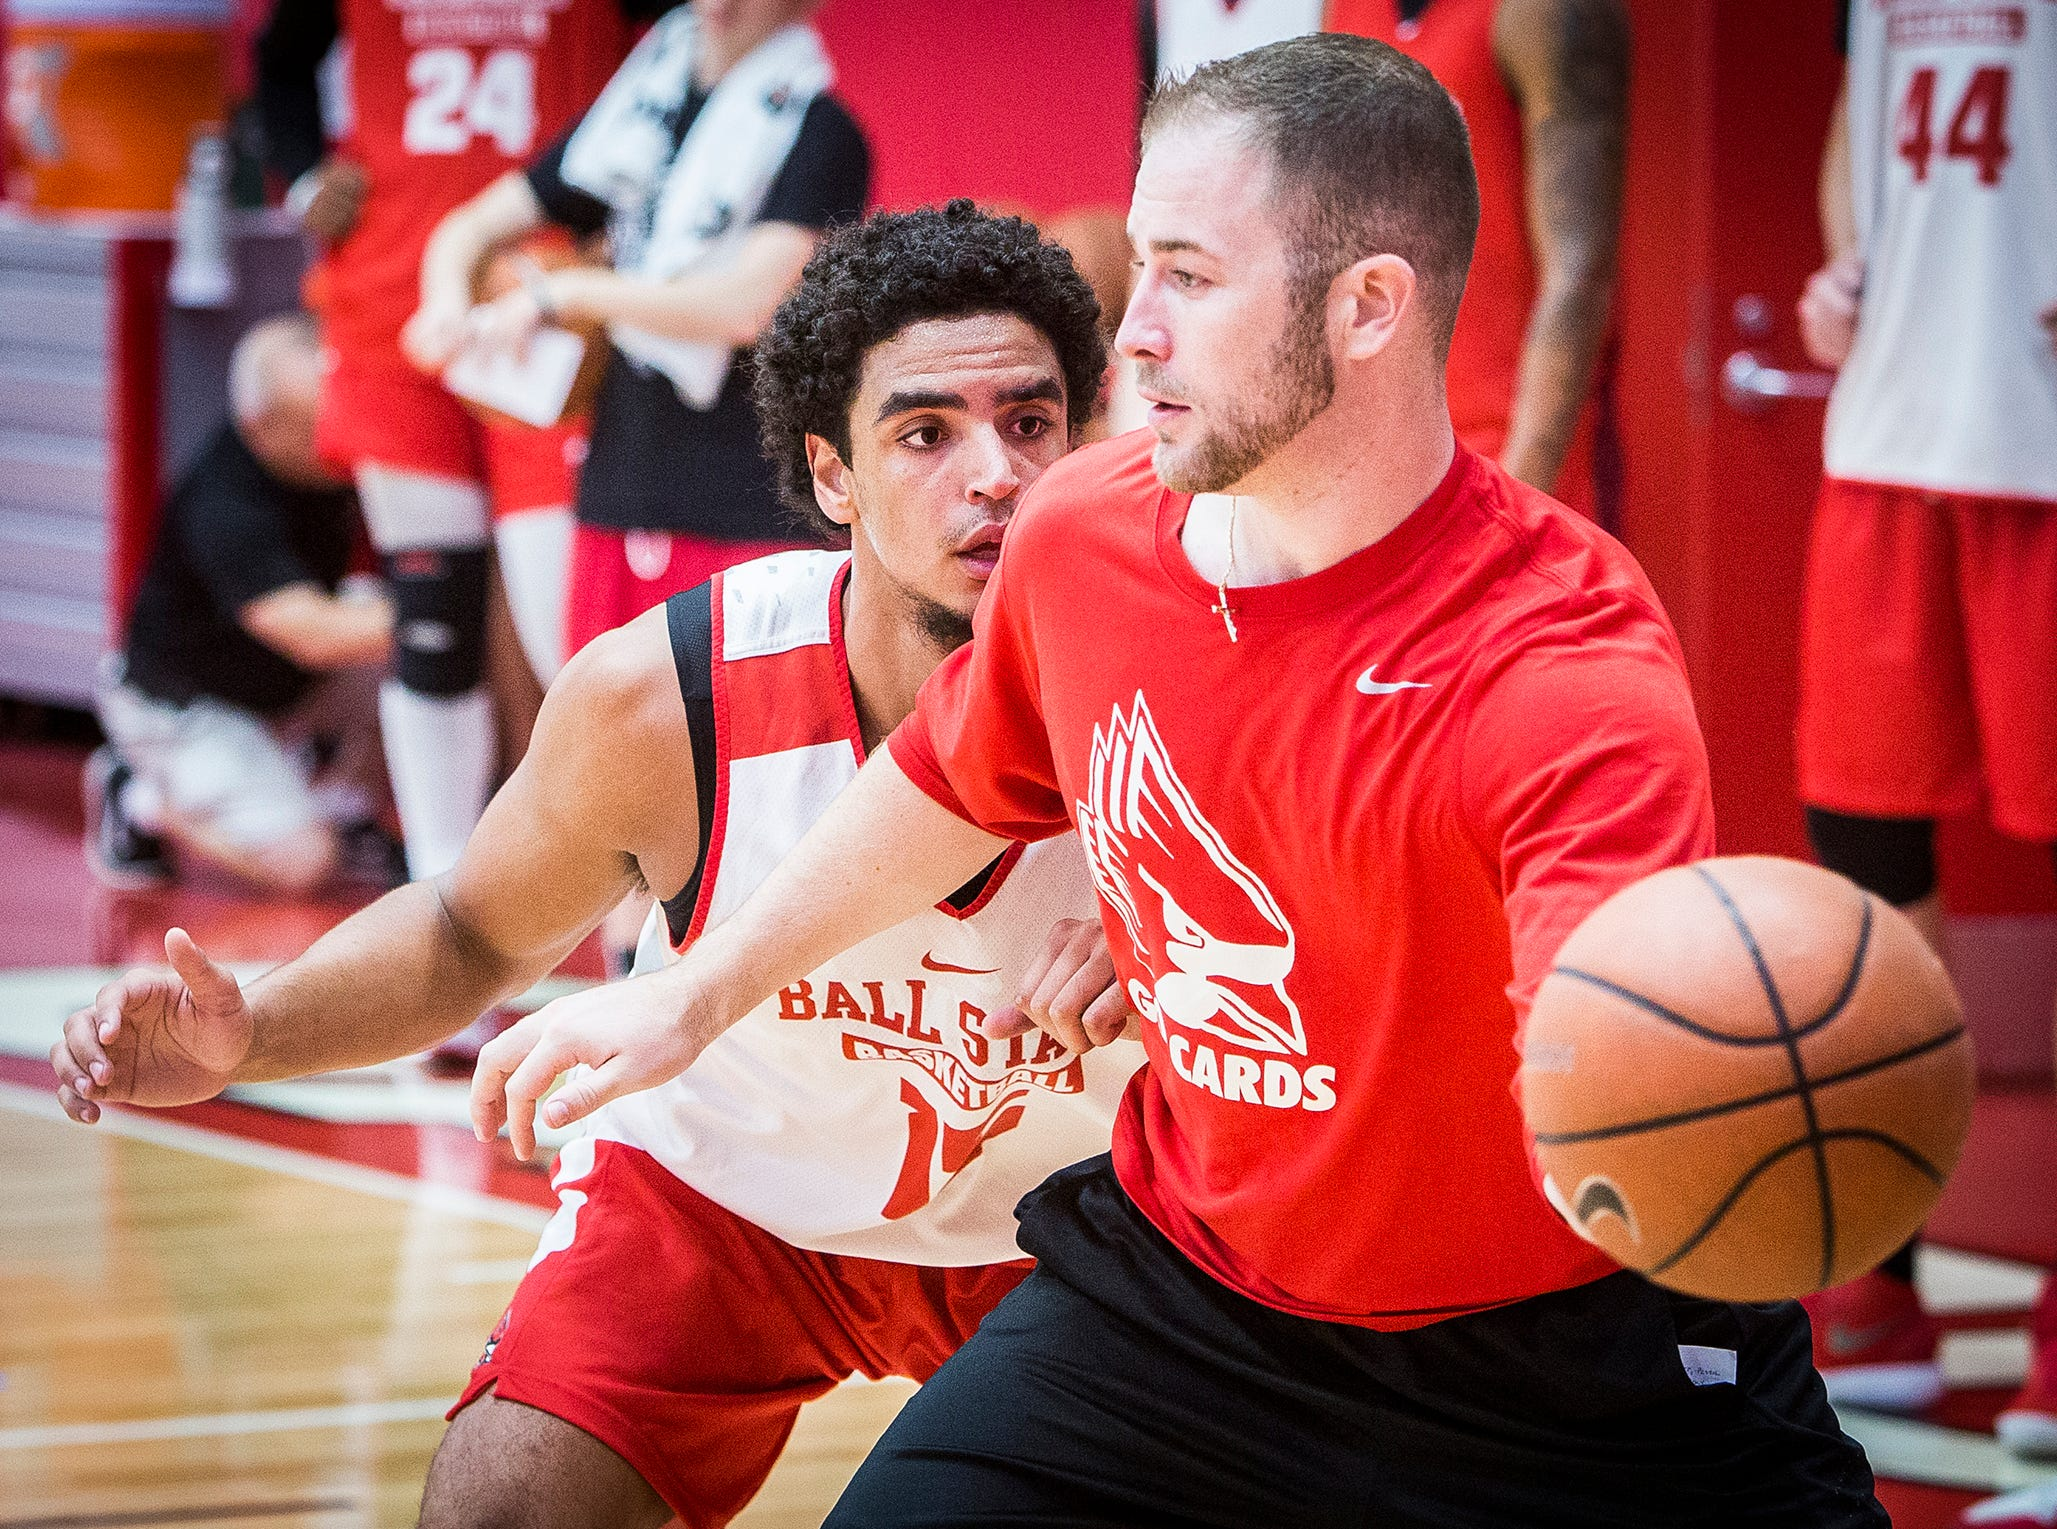 Ball State's Zach Gunn works on defense during the team's first open practice Tuesday, Sept. 25, 2018.